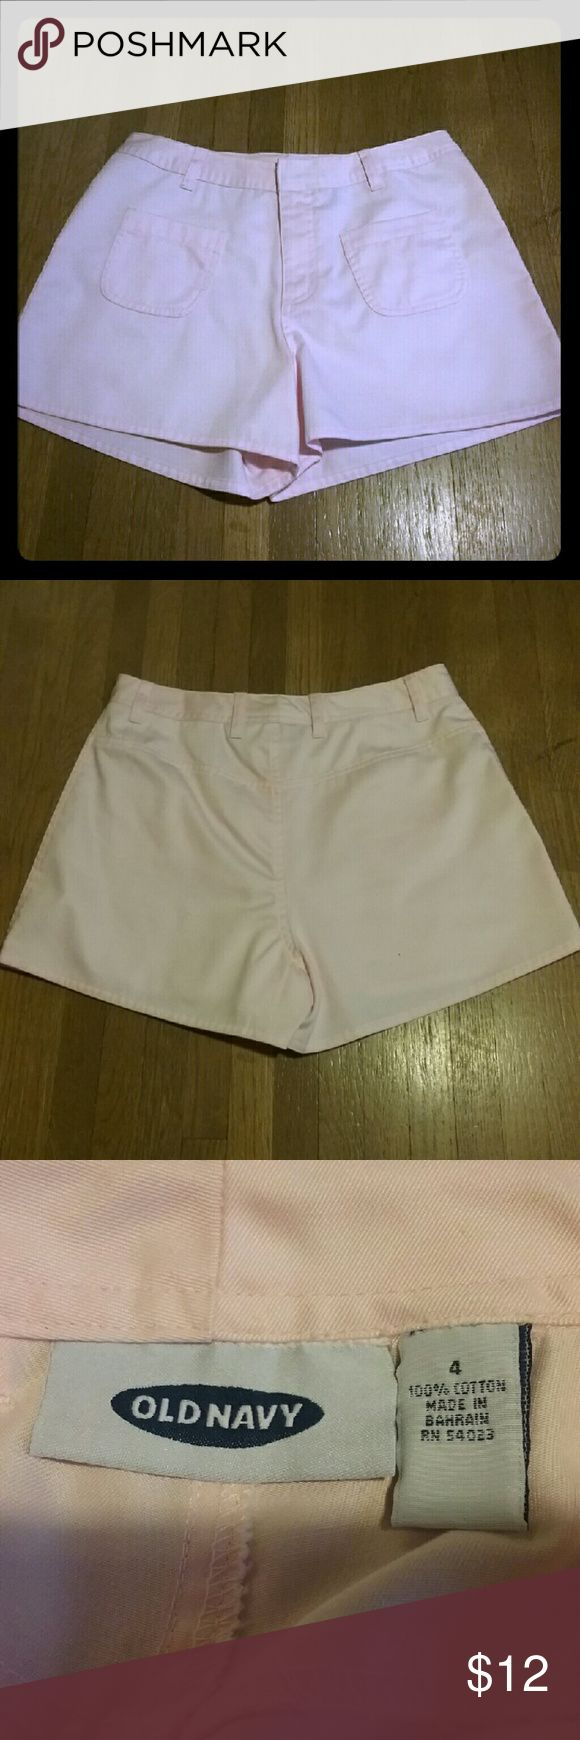 Old Navy (no tags but never worn) pink shorts New Old Navy light pink shorts with 2 front pockets. Very cute. Old Navy Shorts